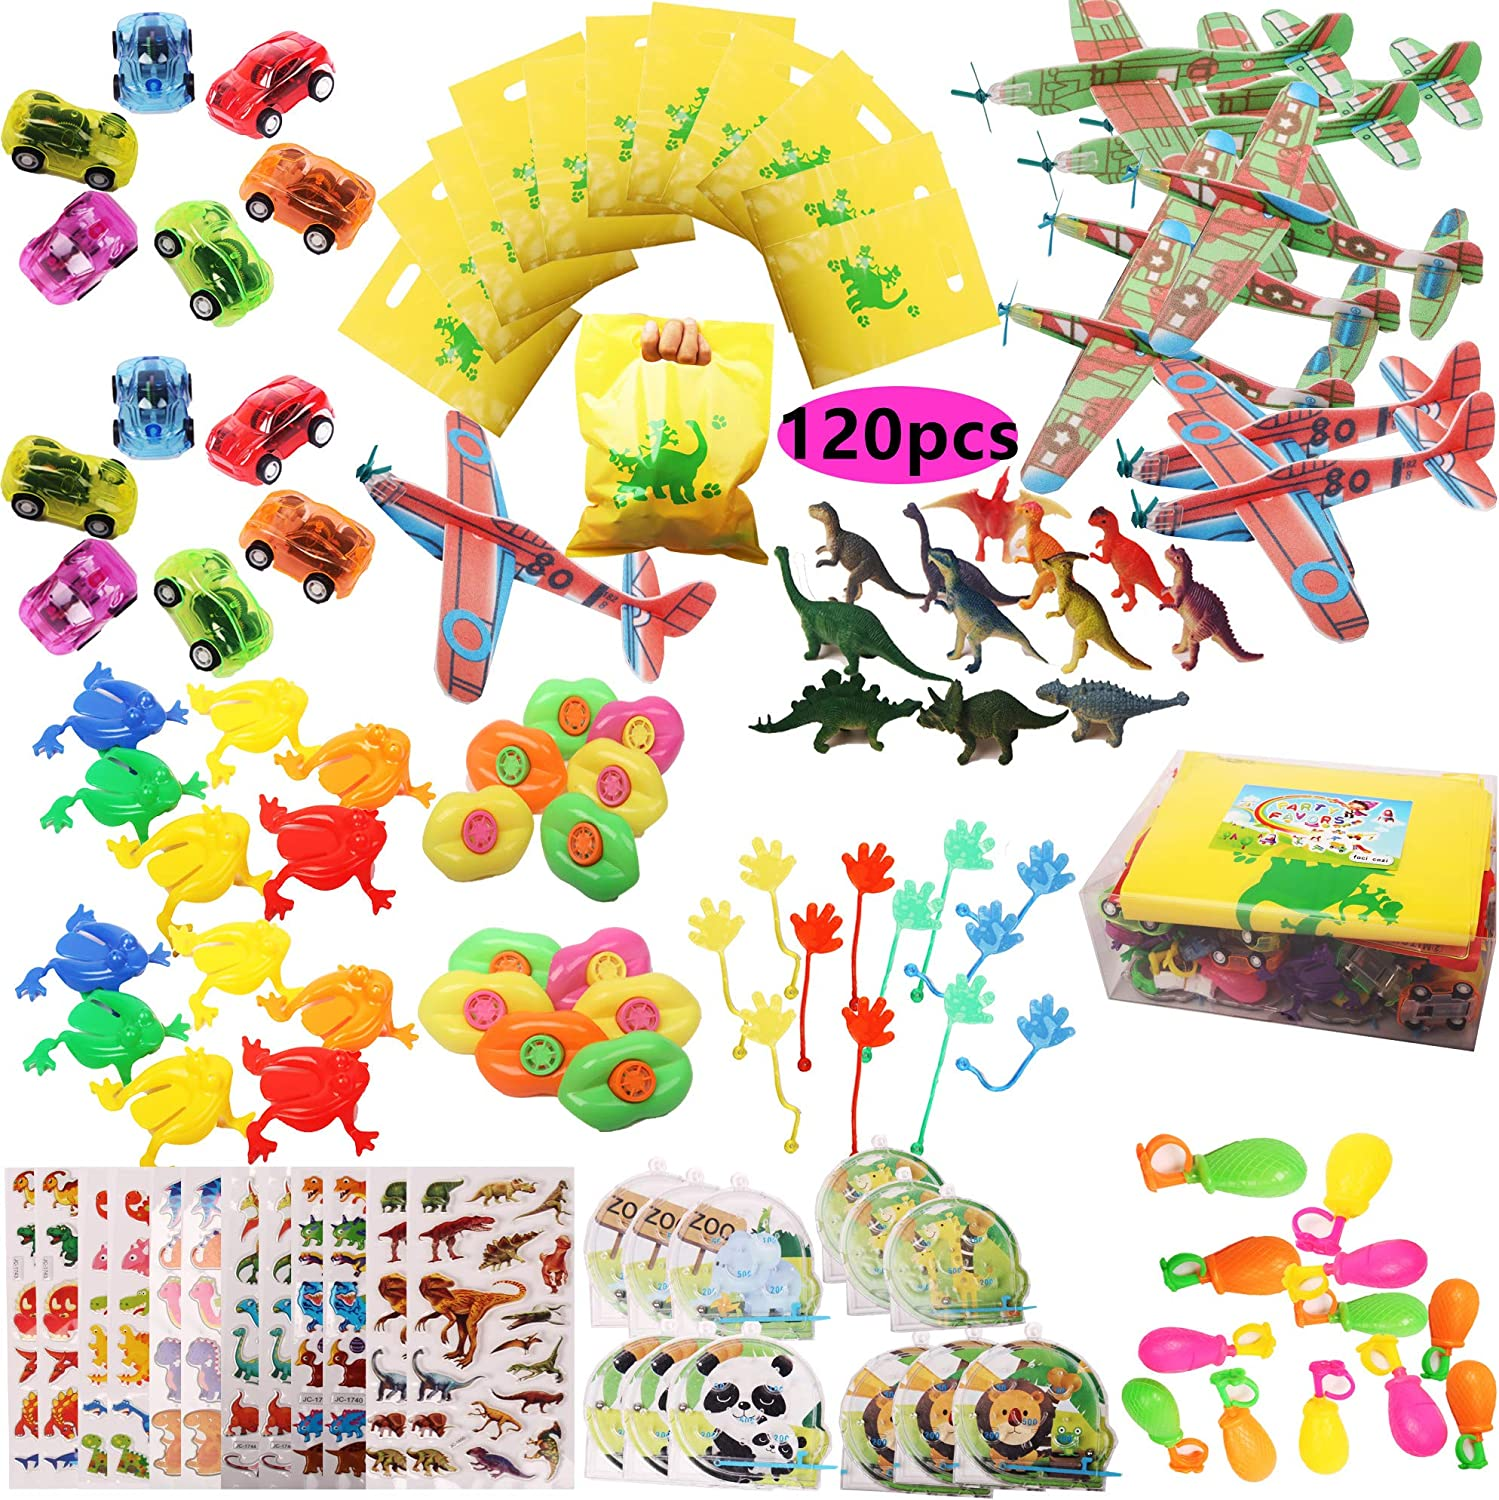 Foci cozi Toy Assortment 120PCS Prize Box Toys for Classroom Pinata Filler Toys for Kids Birthday Party Favors Assorted Carnival Prizes for Boys and Girls Treasure Box   Chest Prizes Toys for Classroom Doctors Dentists Office Prize Box Fillers